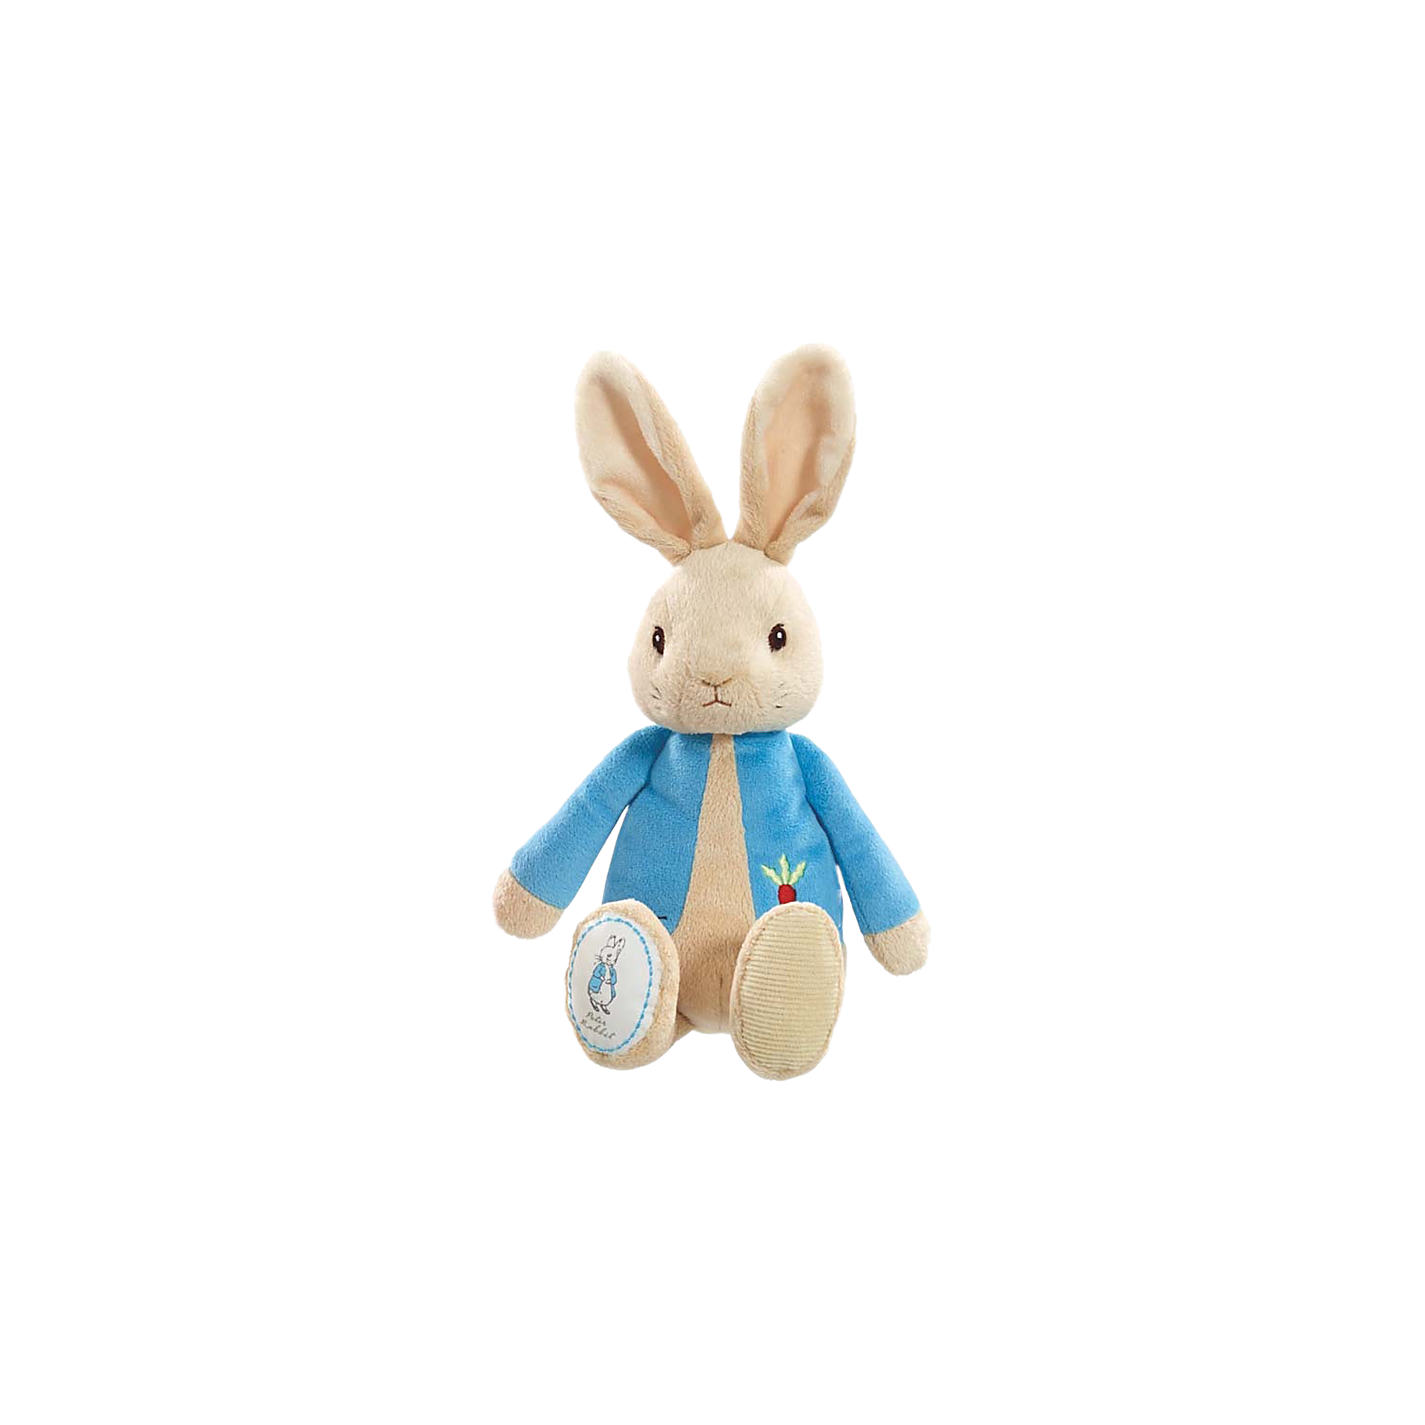 Beatrix potter easter toys gifts john lewis buy beatrix potter my first peter rabbit soft toy online at johnlewis negle Choice Image